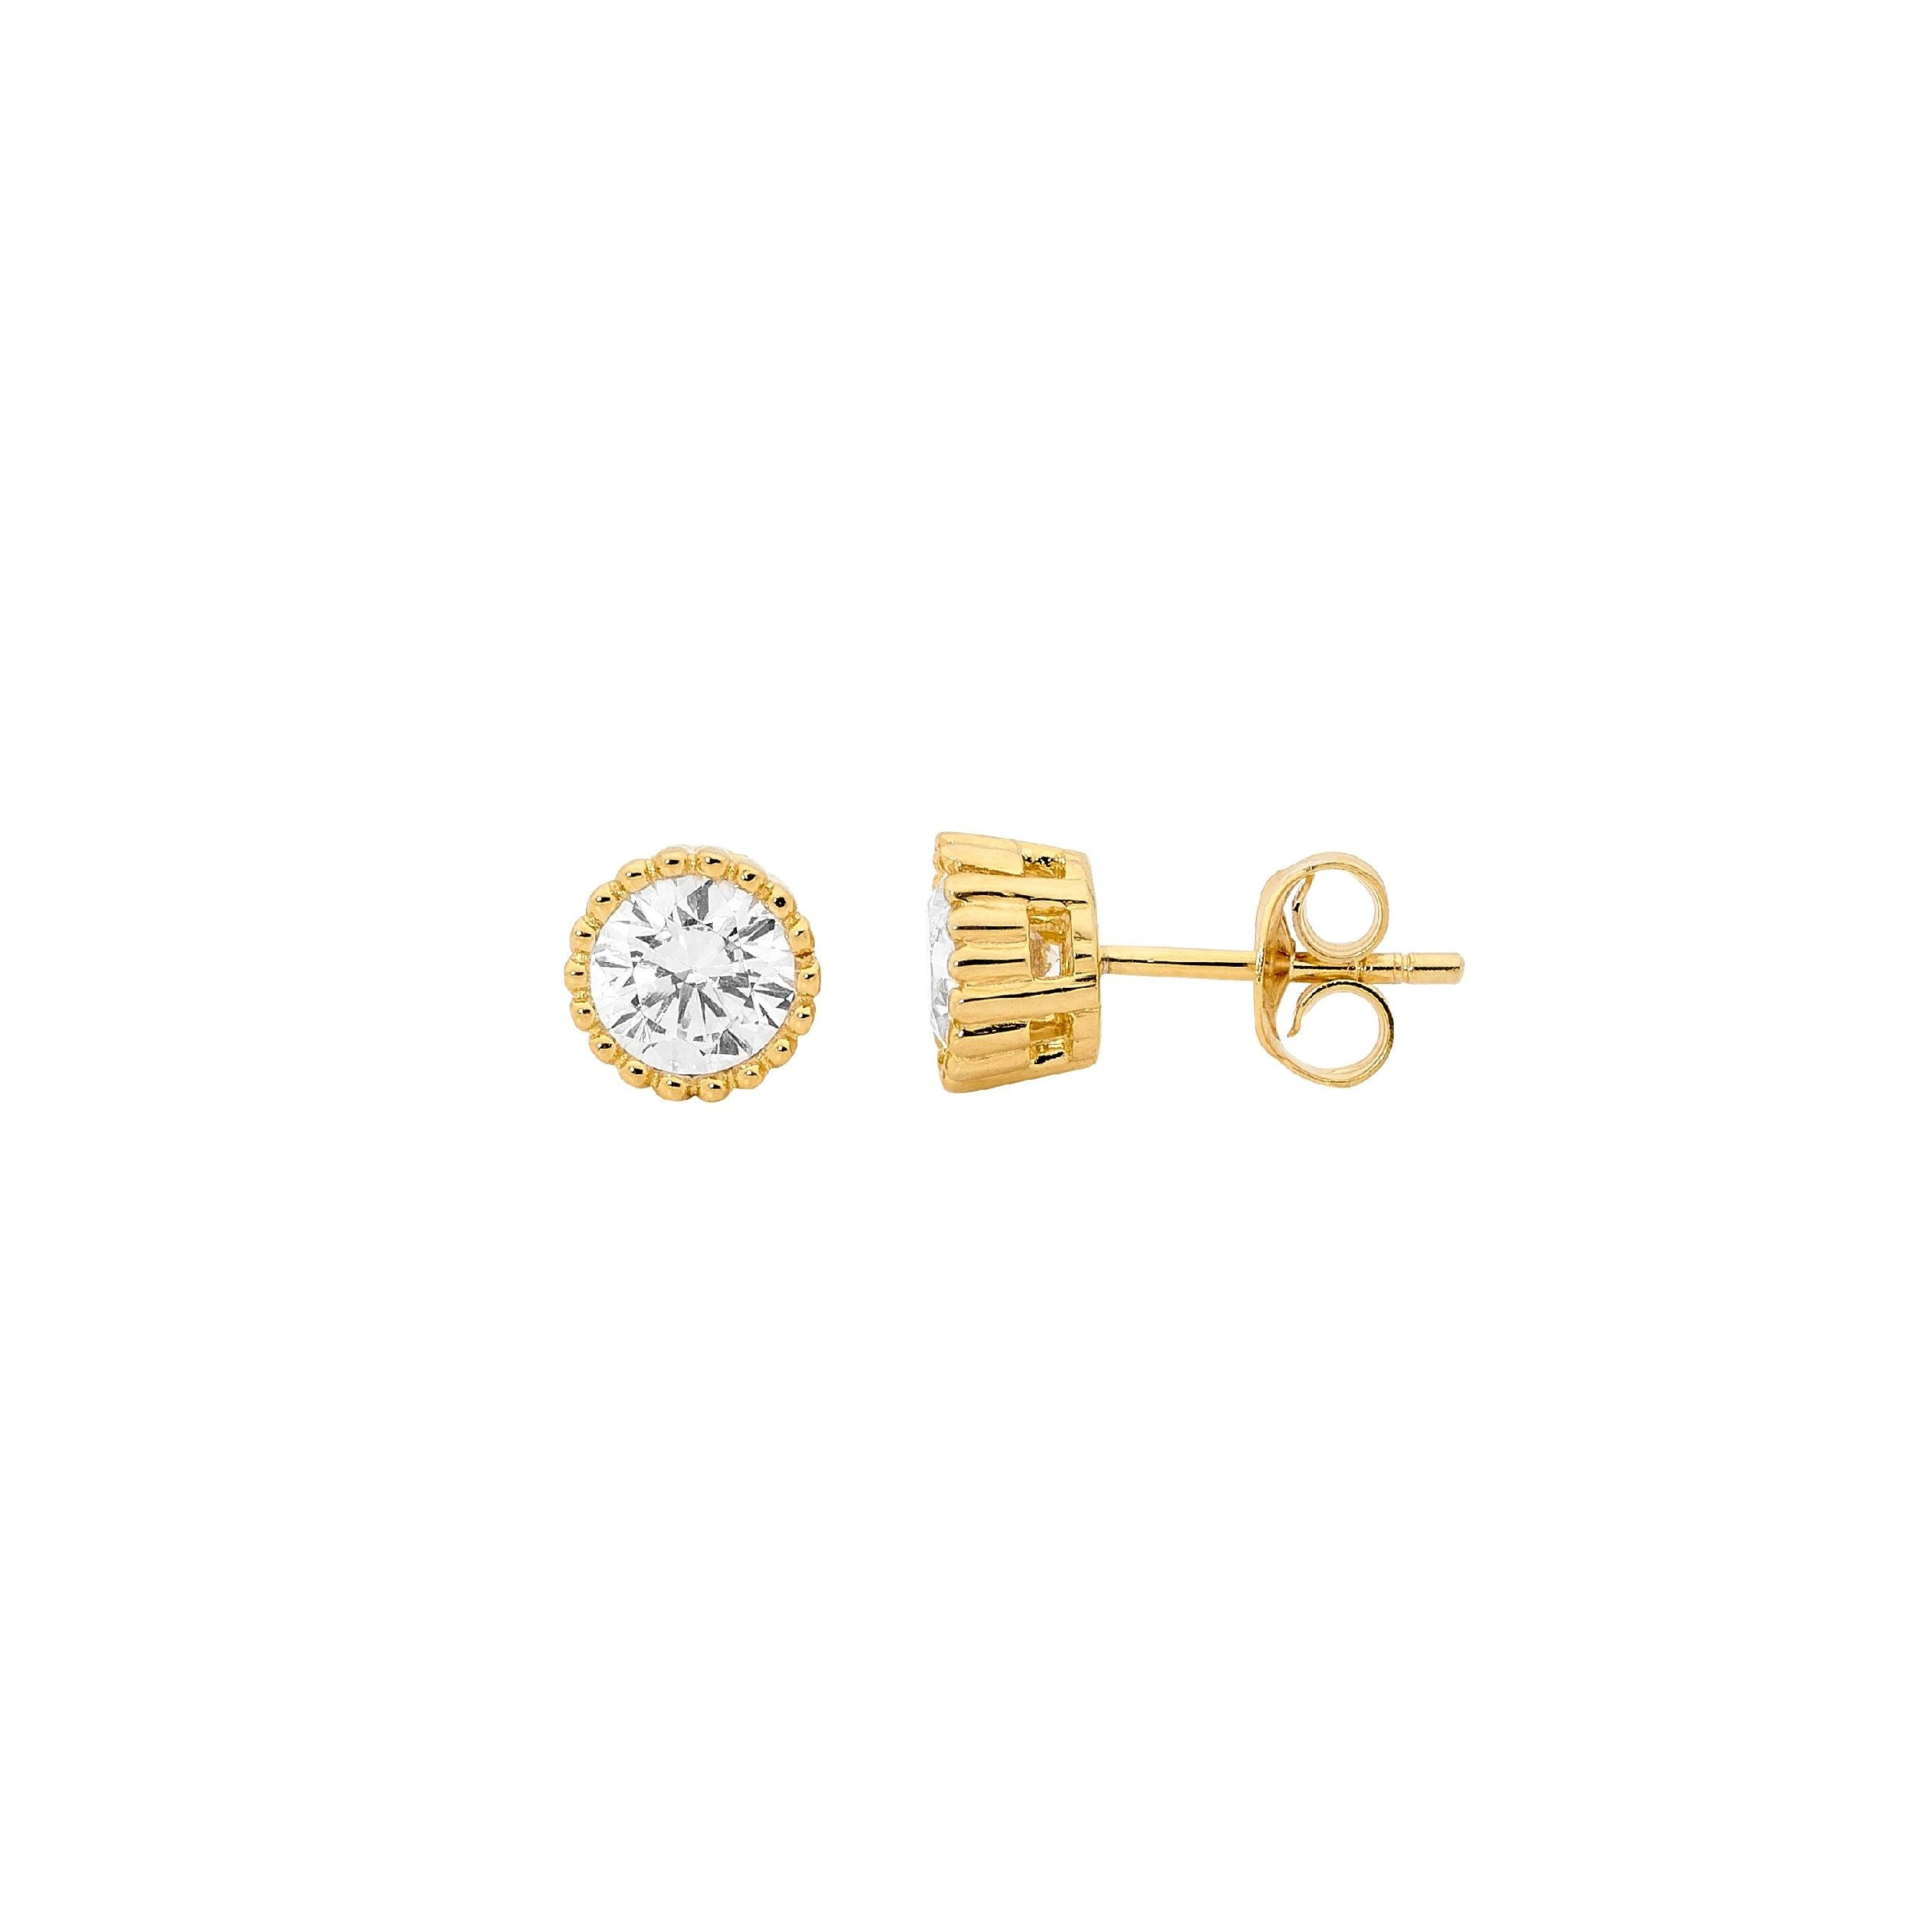 S/S 4MM WH CZ CROWN SET EARRINGS W/ GOLD PLATING -